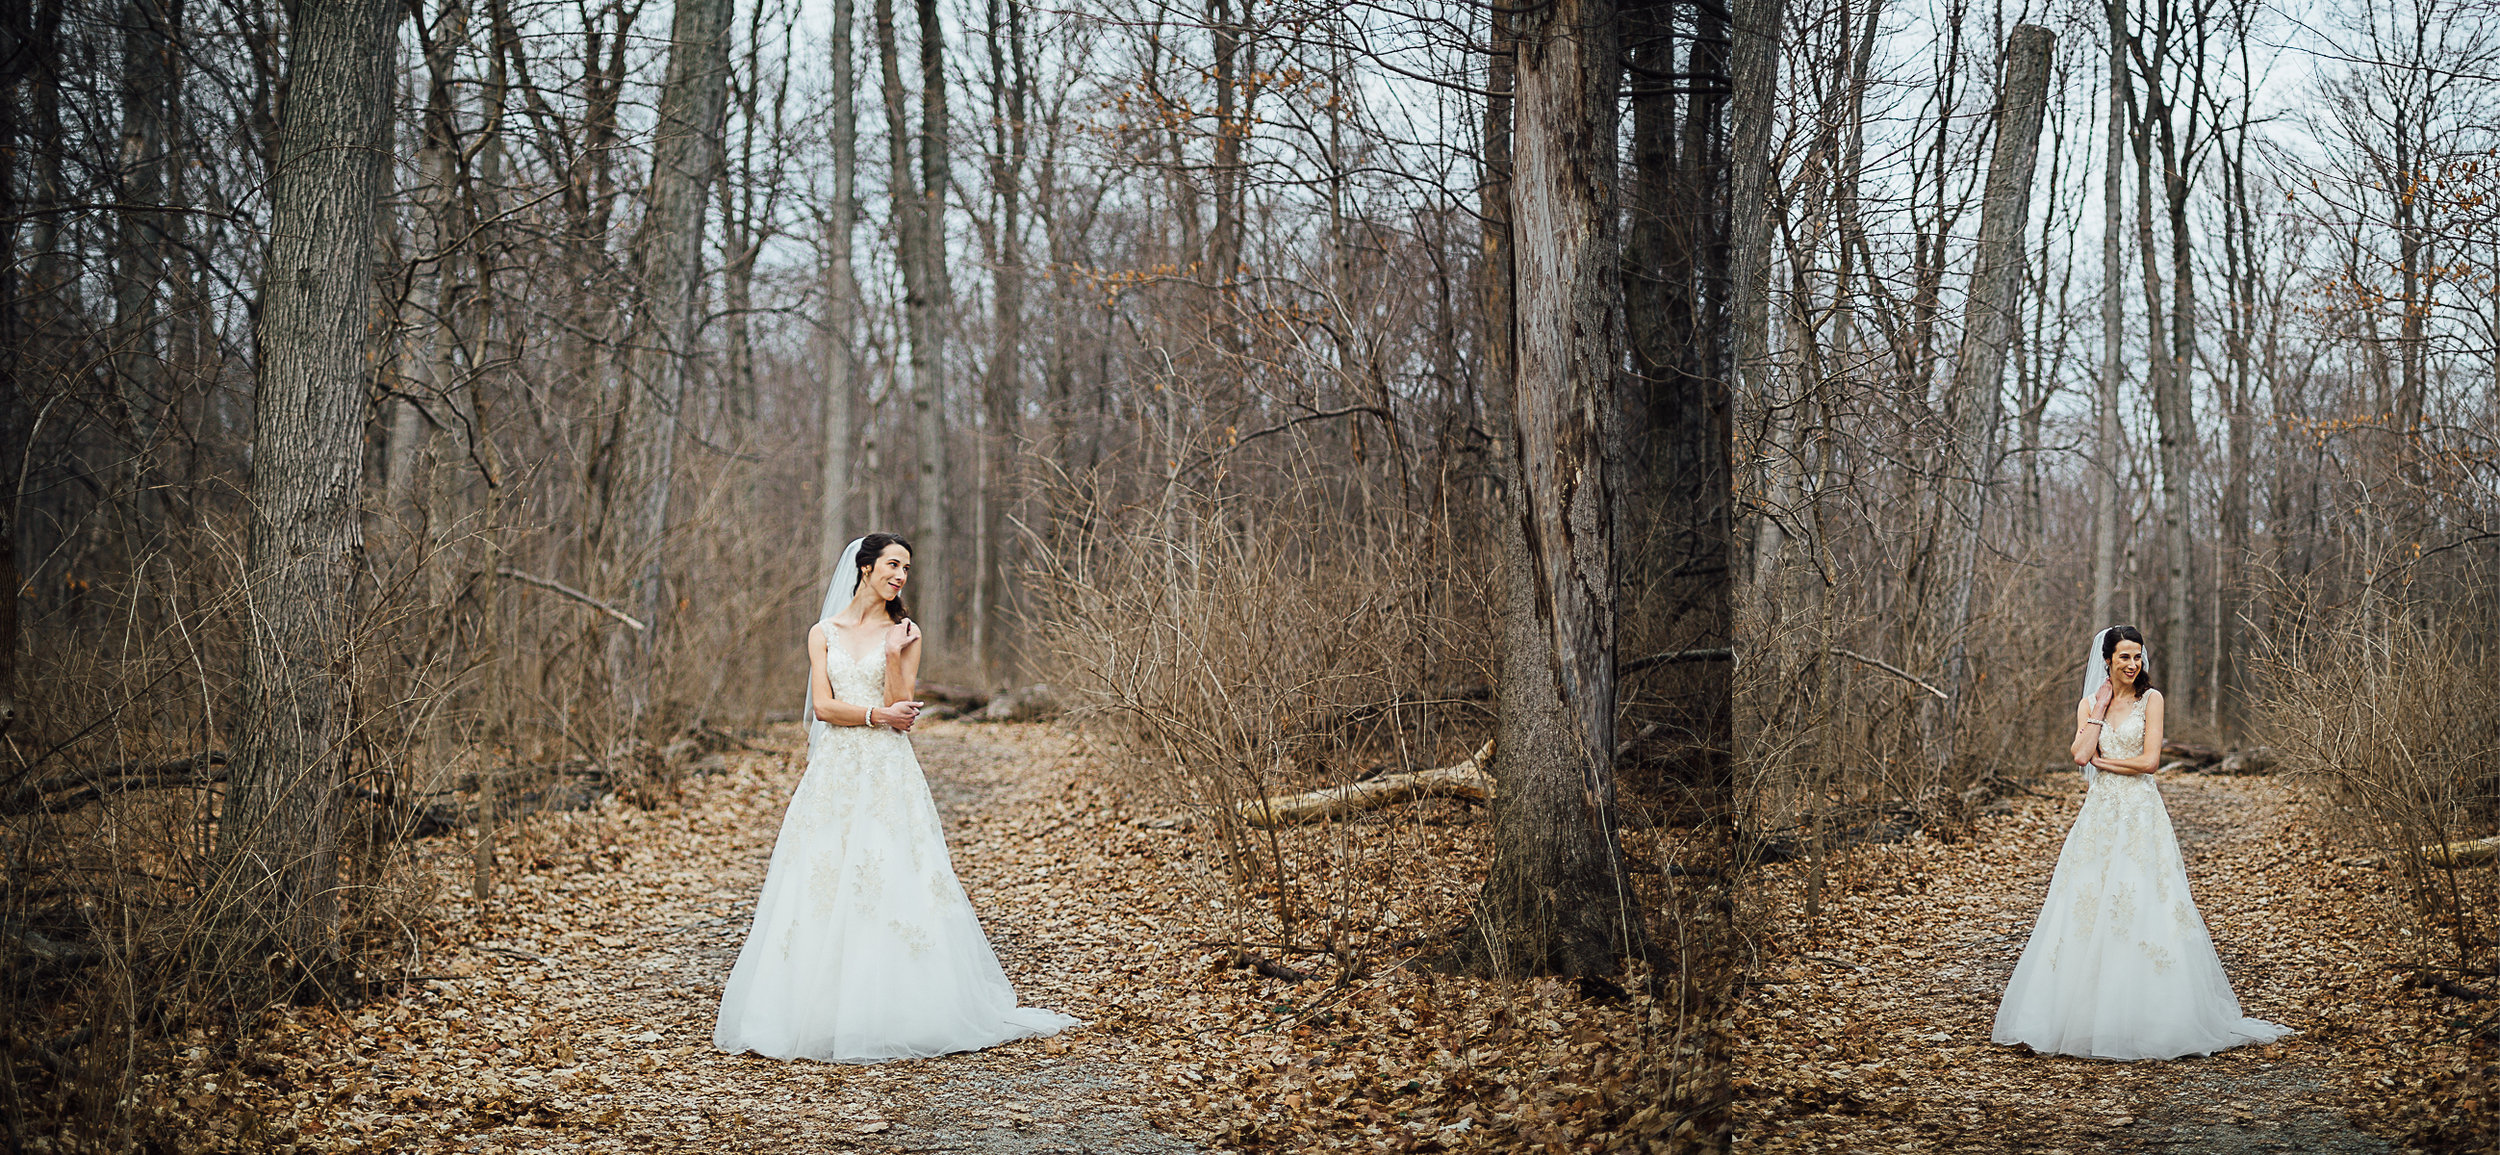 Beautiful Bride on her Wedding Day by Corrie Mick Photography.jpg